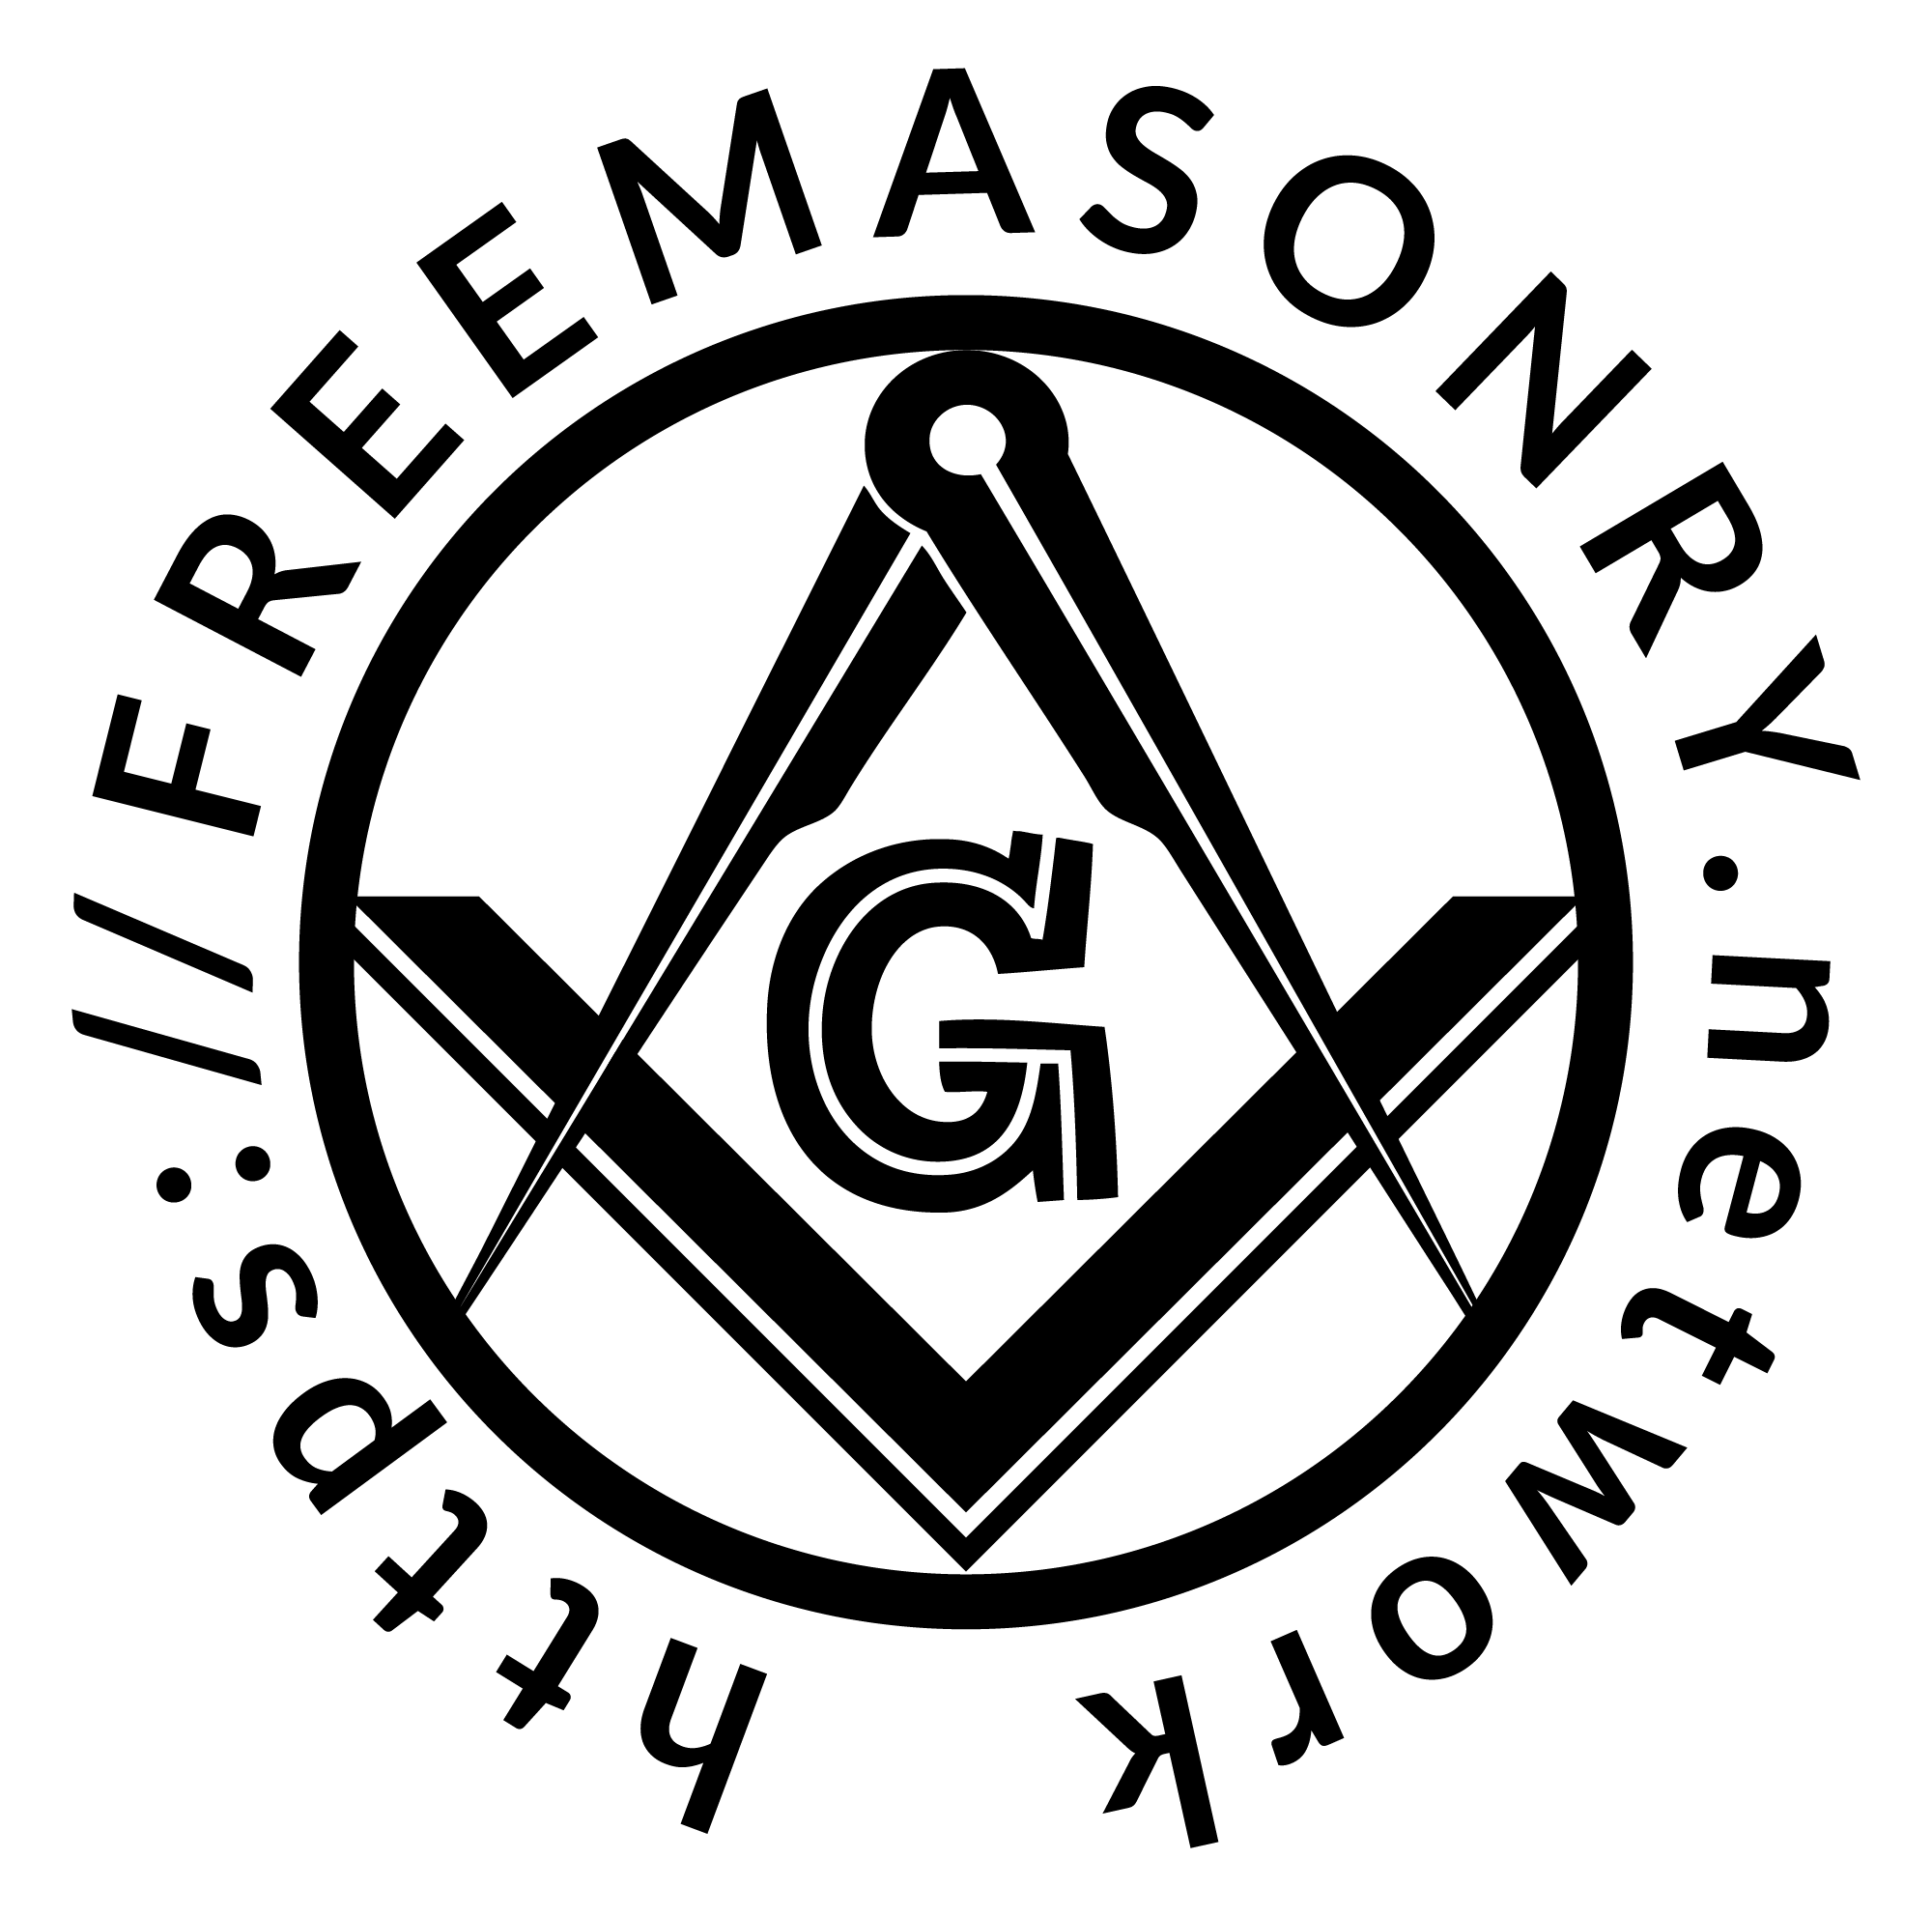 FREEMASONRY IN CONNECTICUT